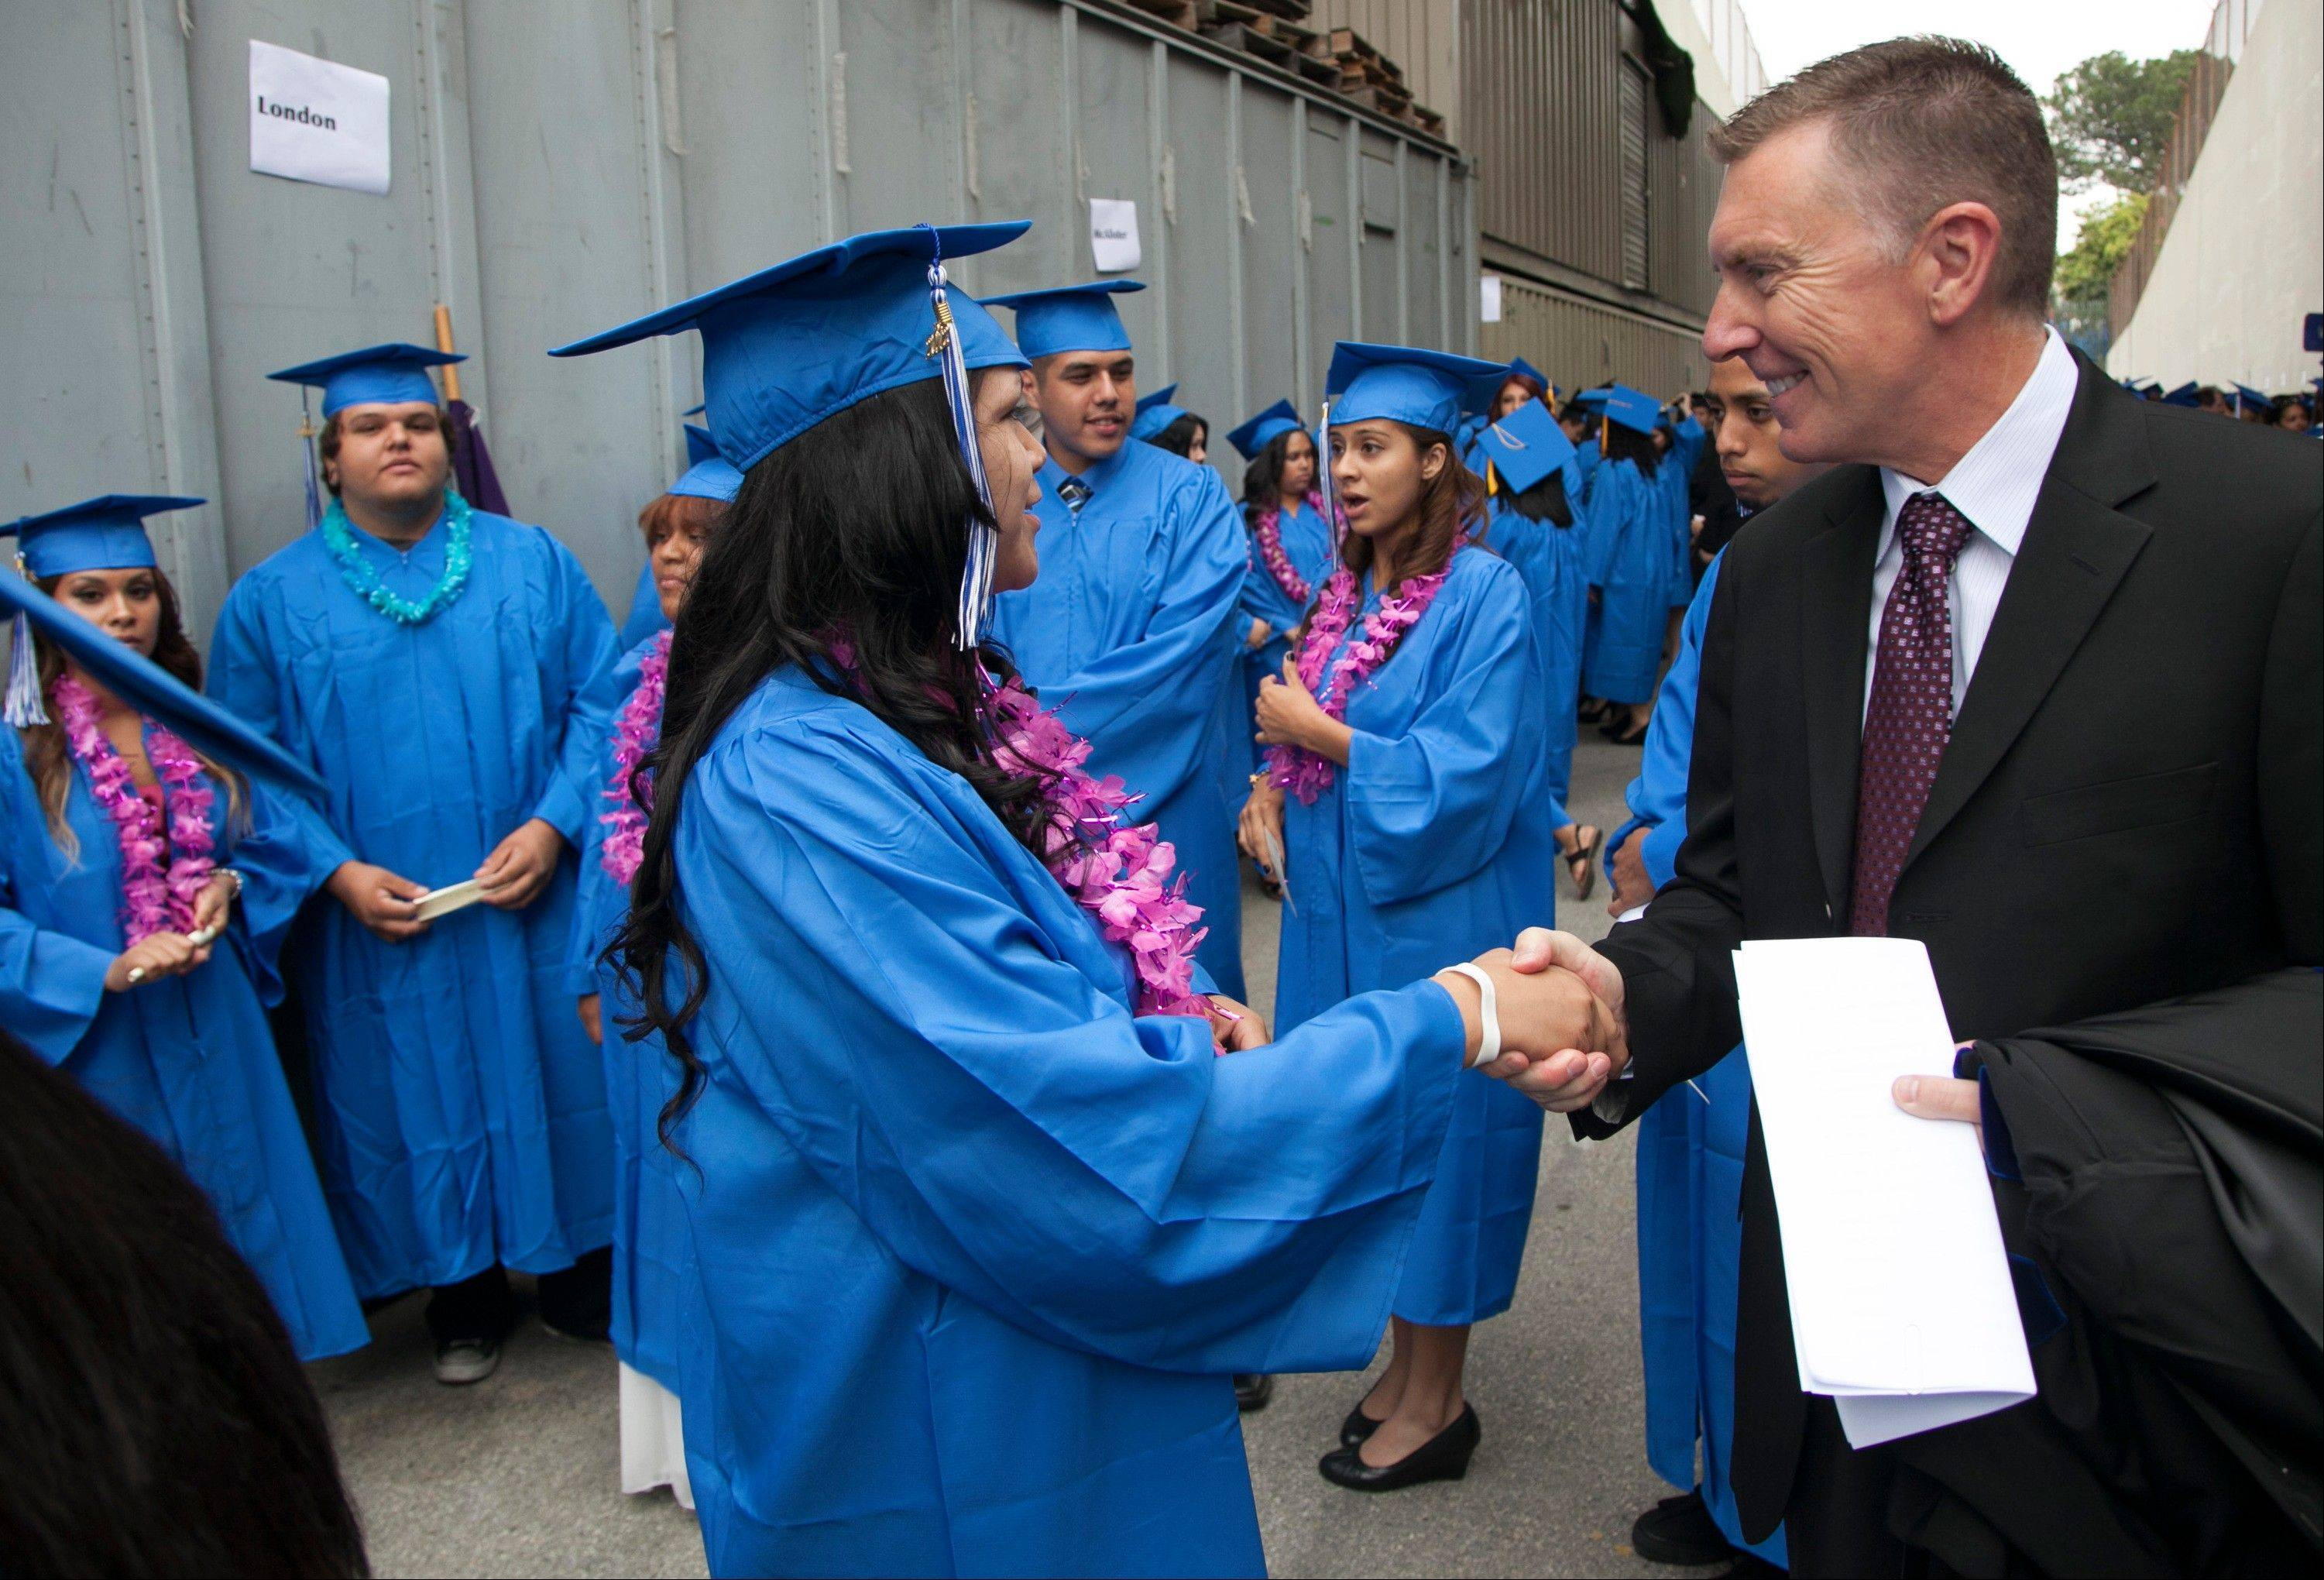 Los Angeles Unified School District Superintendent John Deasy tours the district in Los Angeles.